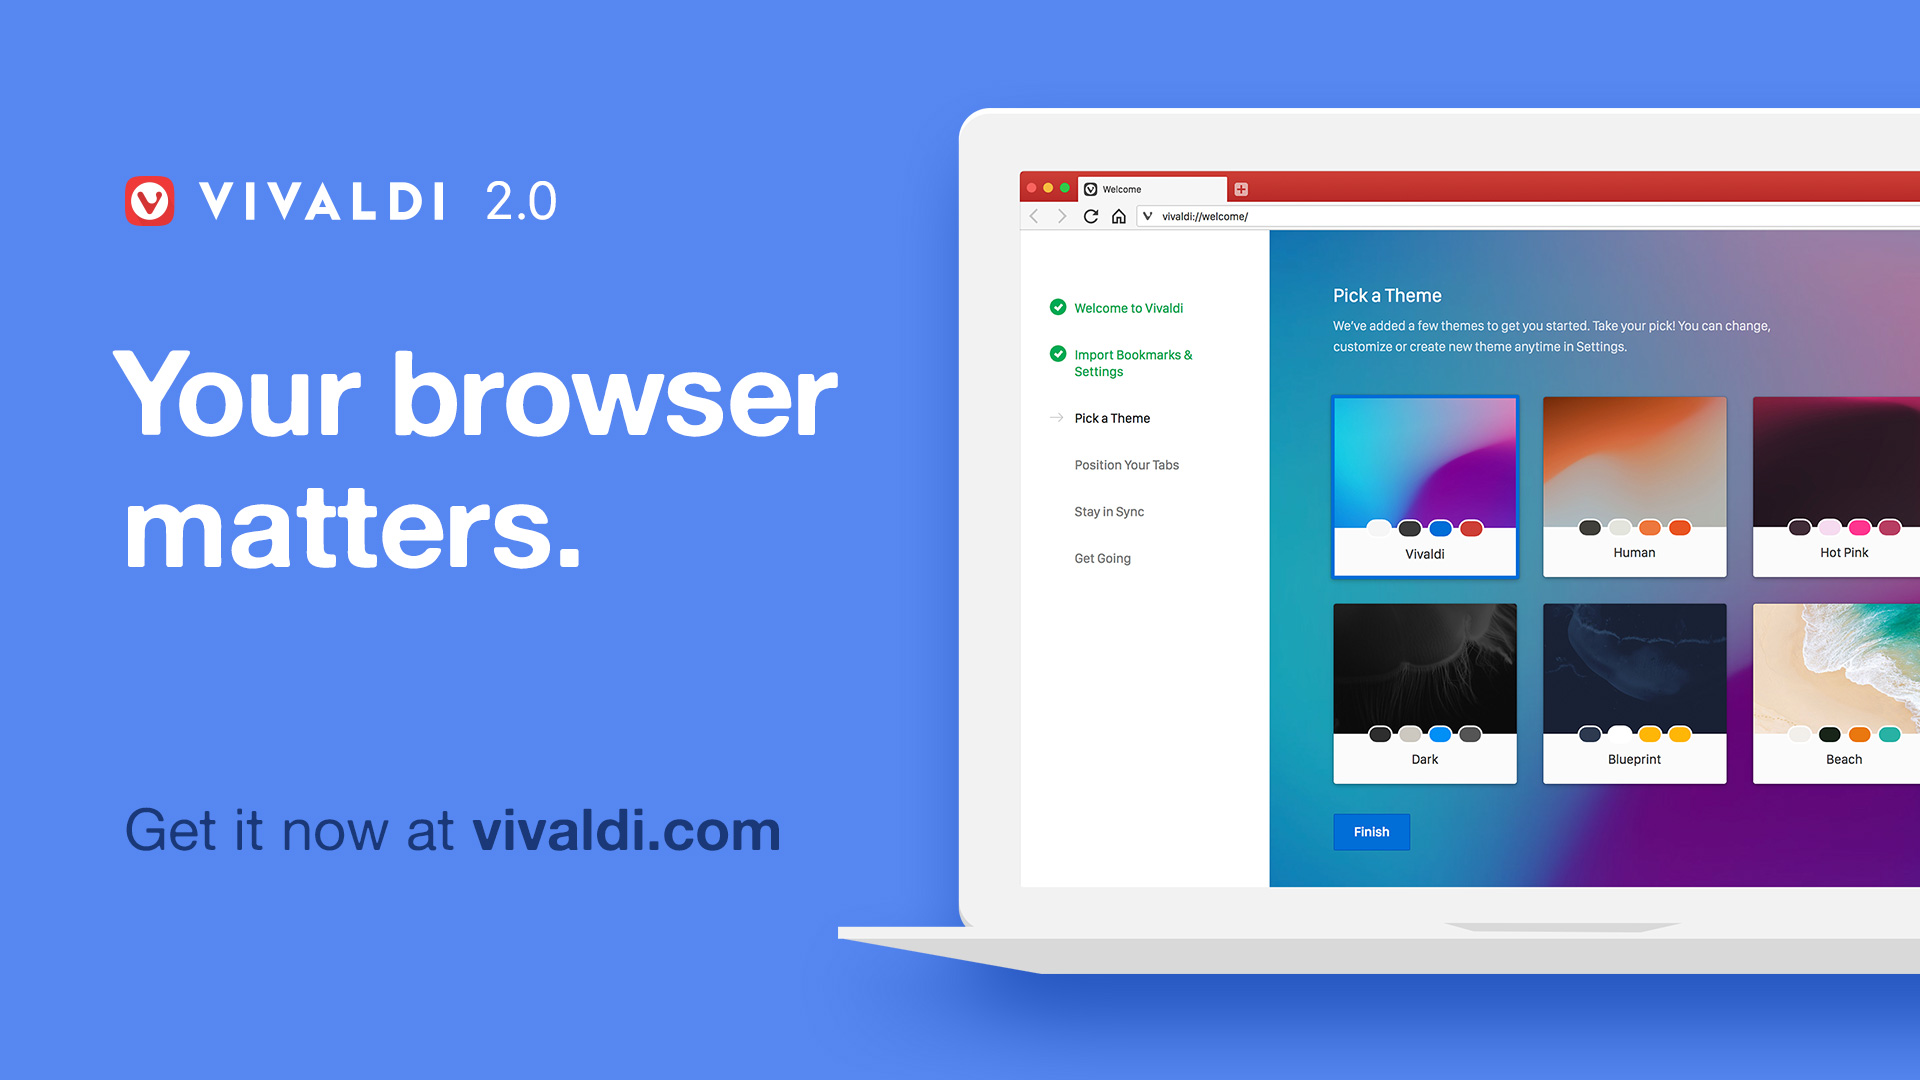 Vivaldi 2.0 – Your browser matters